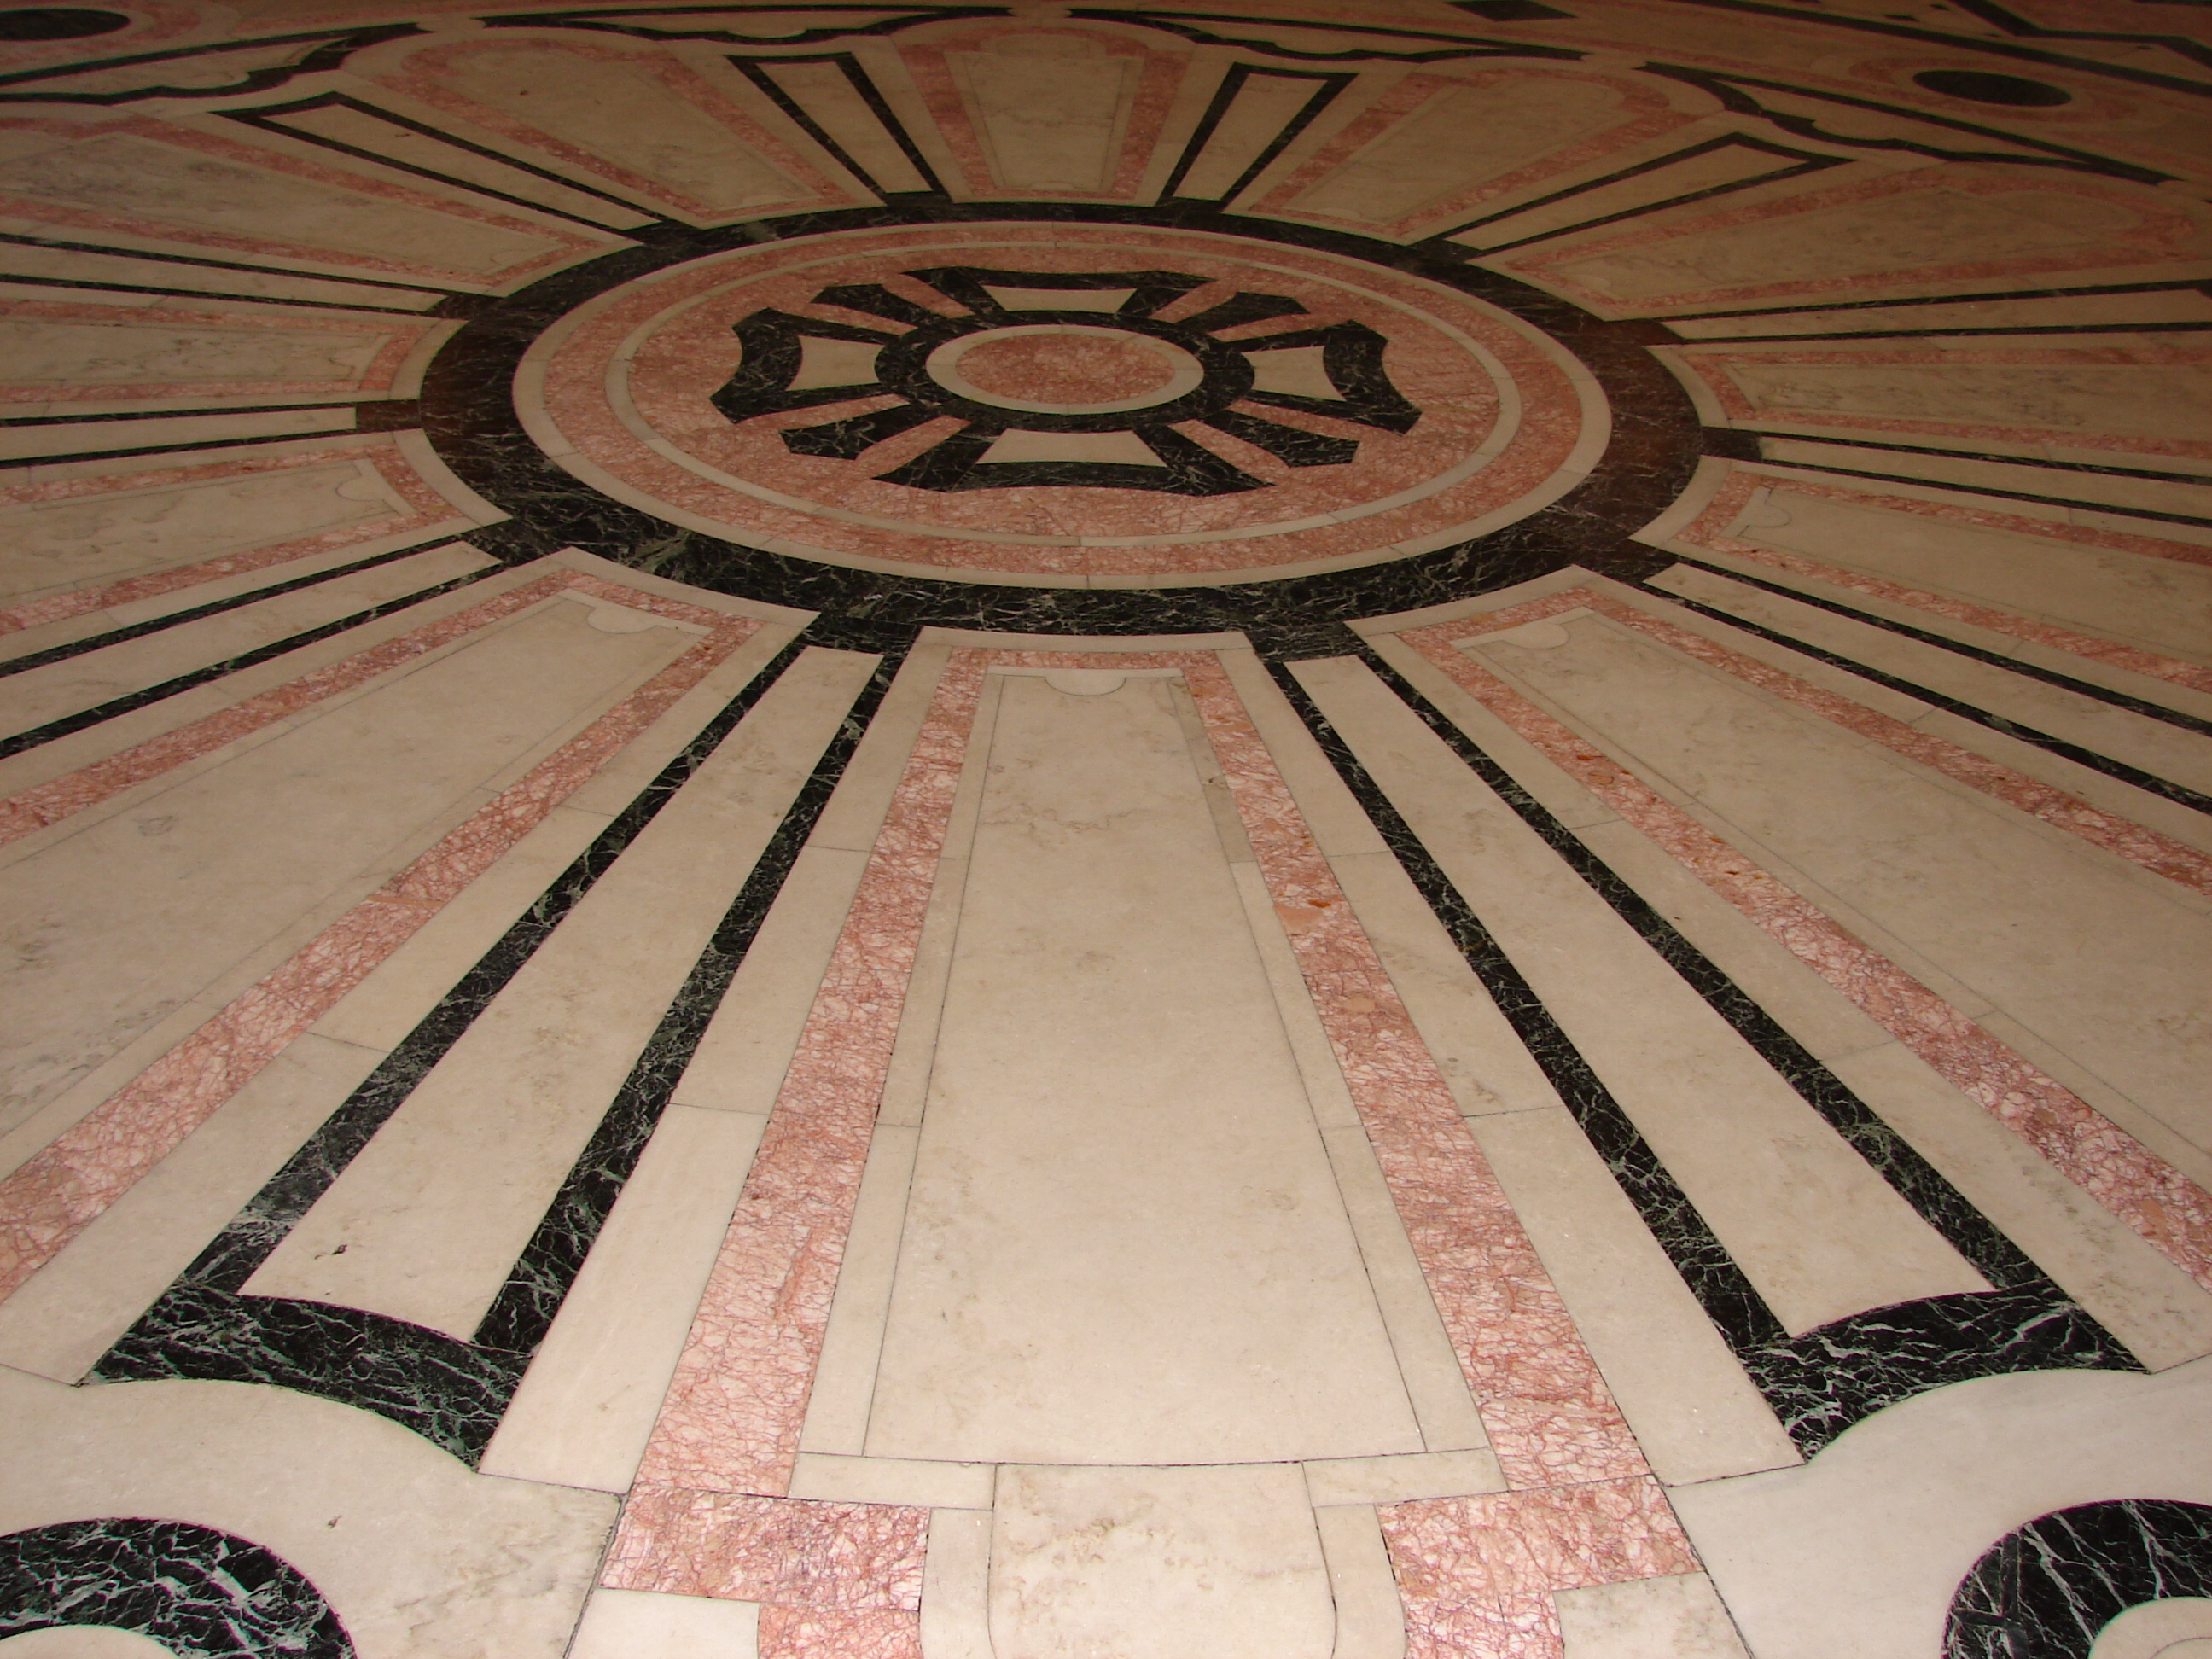 memorial hall marble floor by fantasystock on deviantart